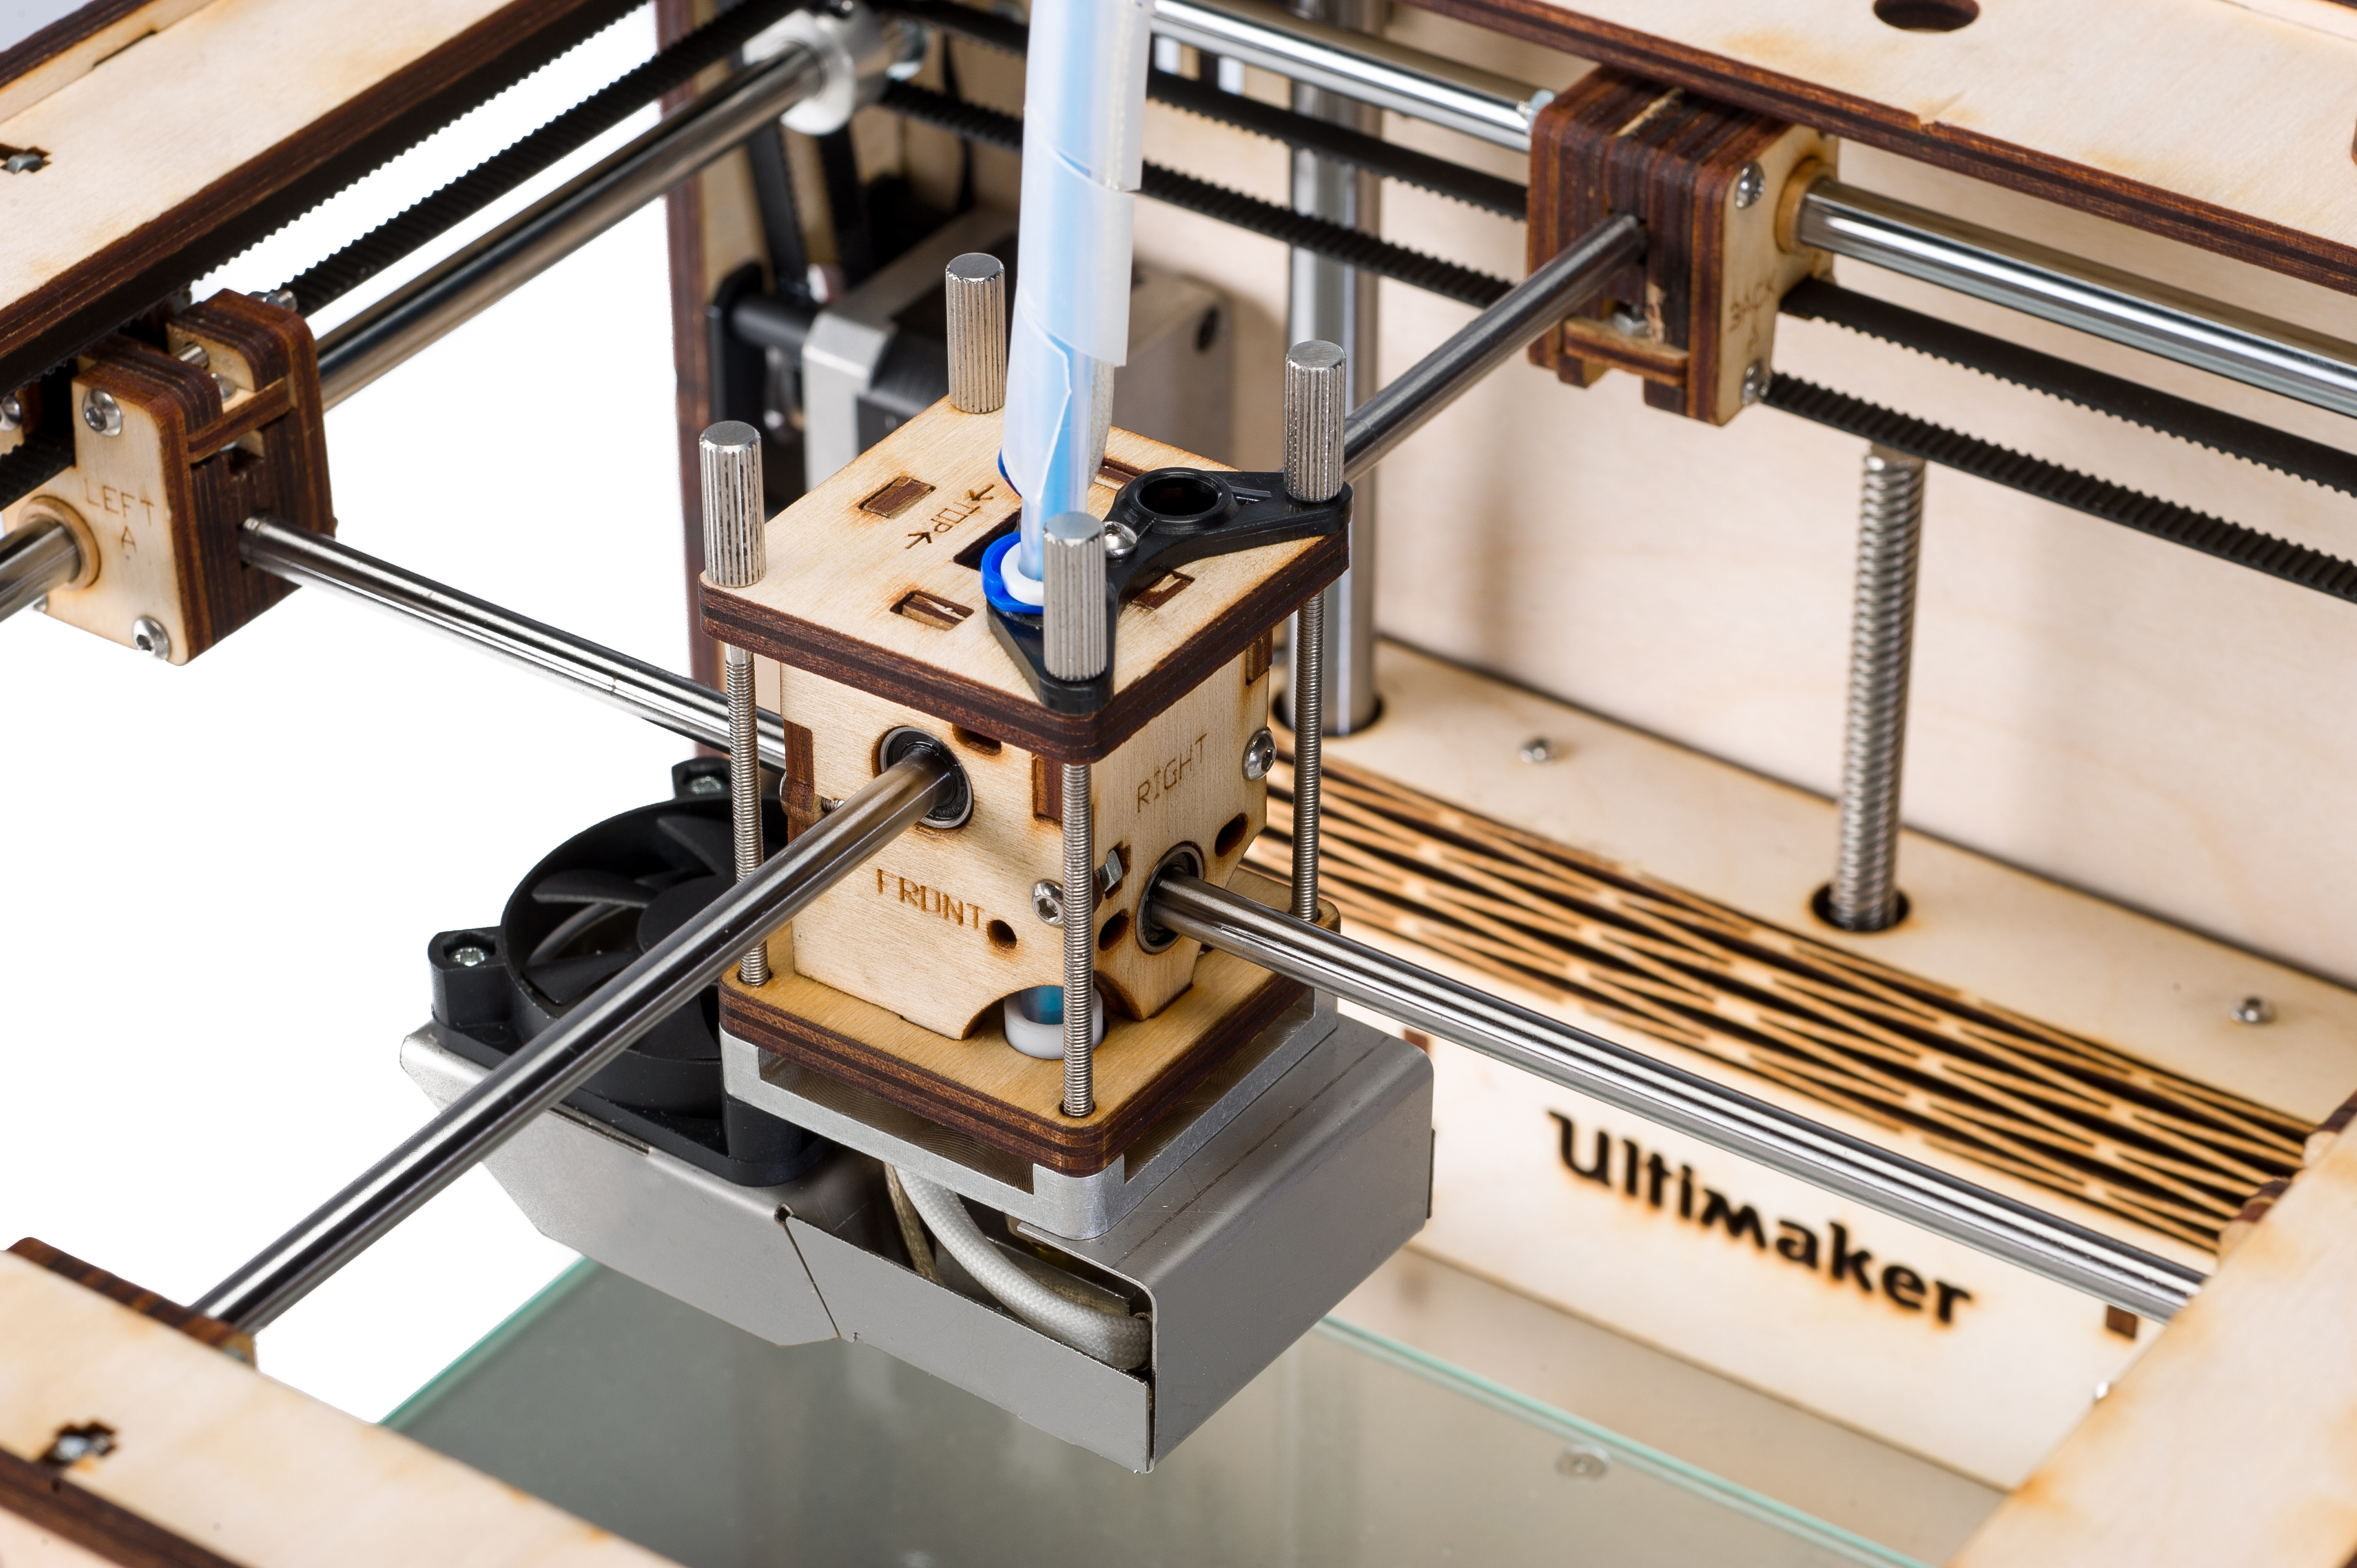 The Ultimaker was one of the 20 best desktop 3D printers ranked by 3D Hubs.